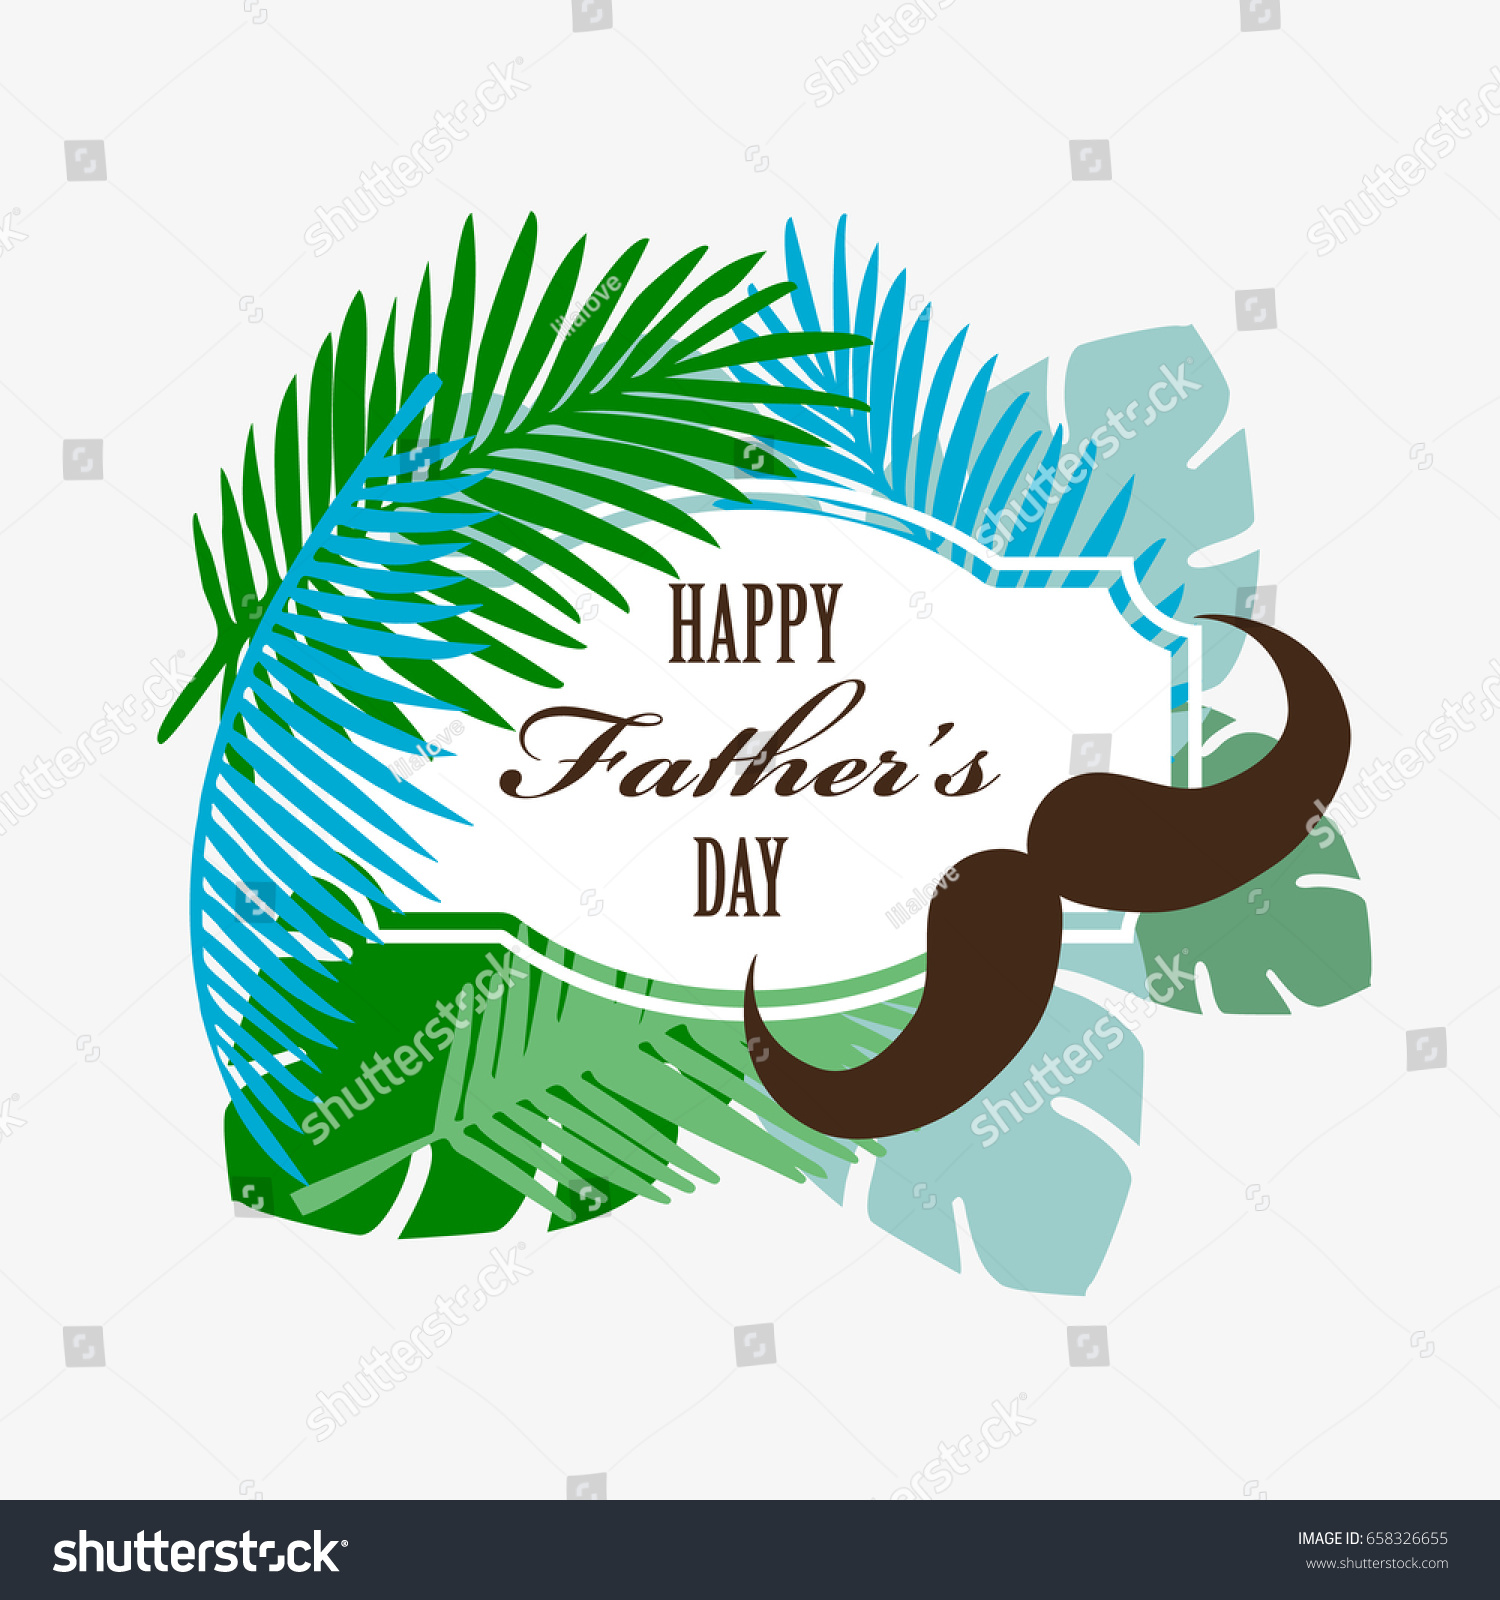 Fathers Day Greetings Card Tropical Design Stock Vector Royalty